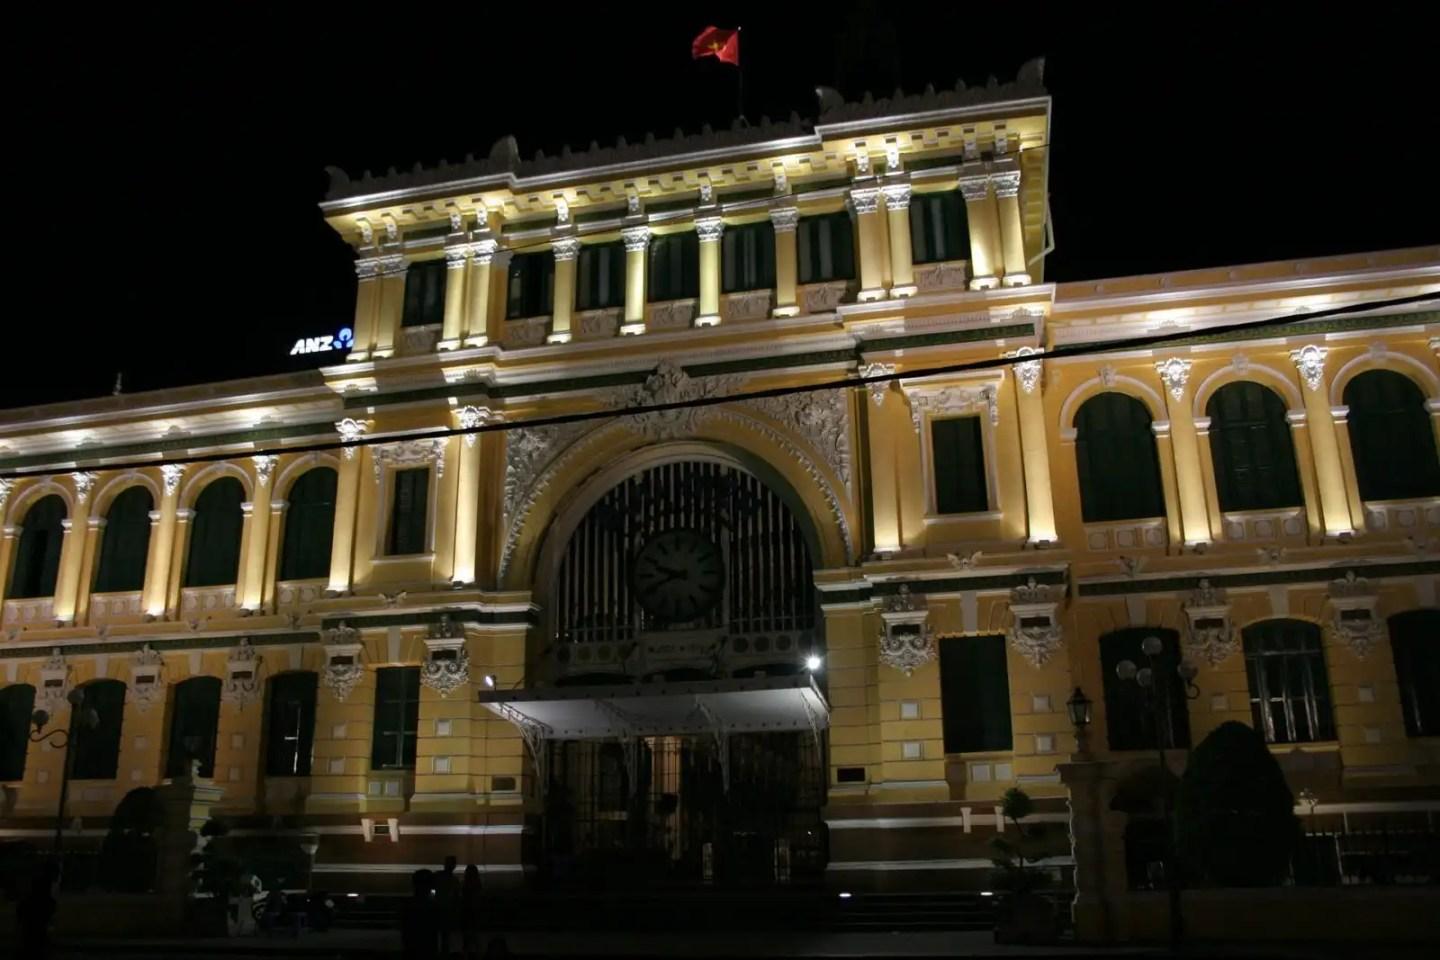 Saigon Main Post Office at night, Vietnam